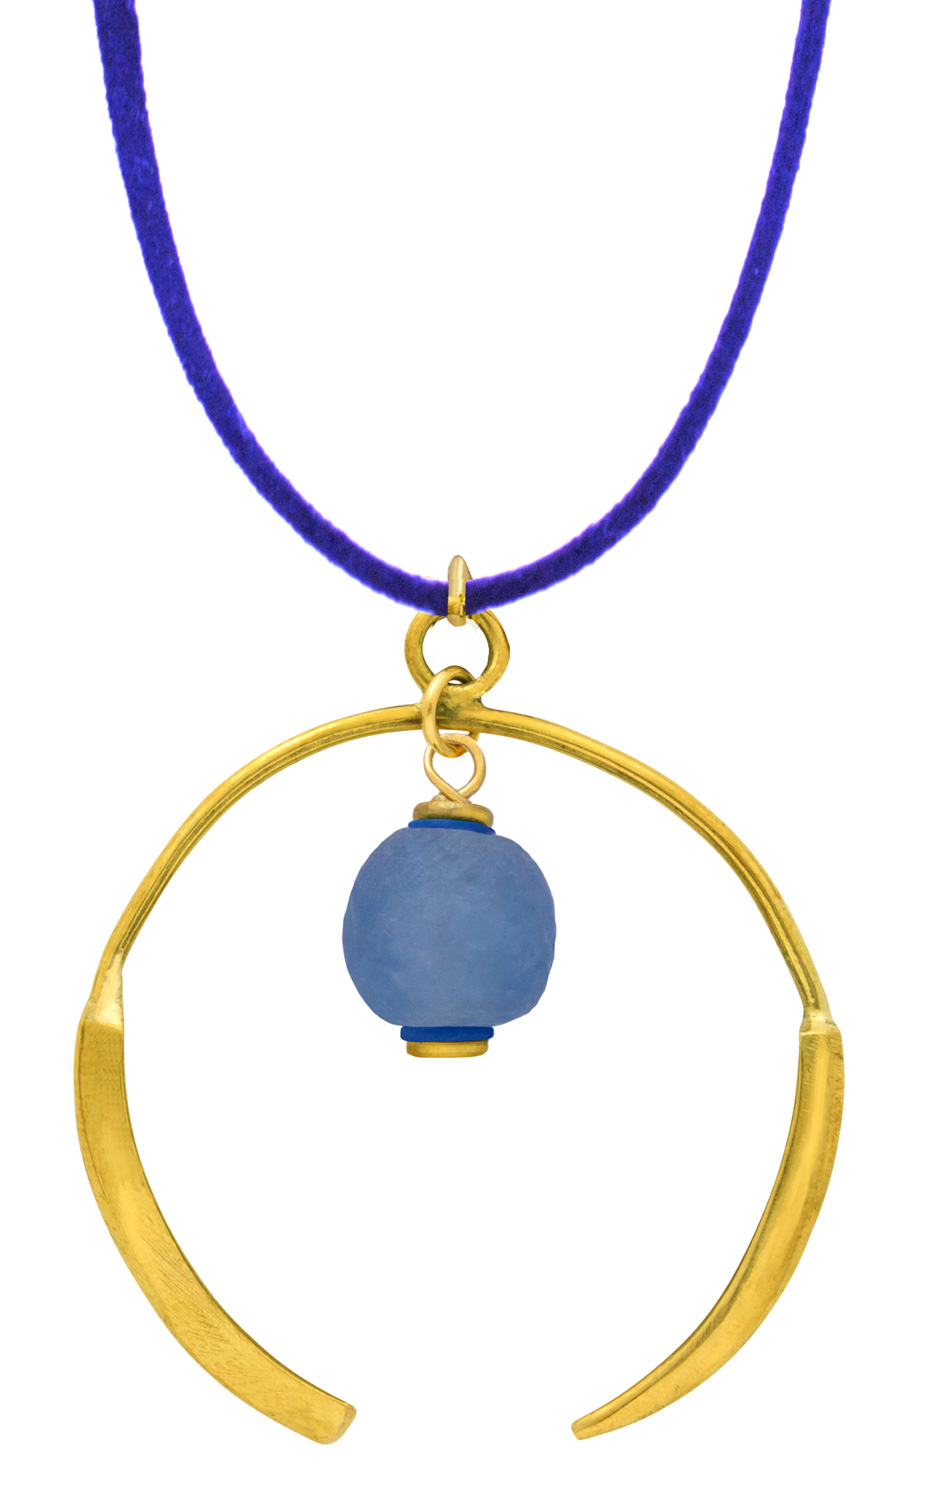 Small Samawati Blue Aza Petite Necklace on Suede by SHIKHAZURI